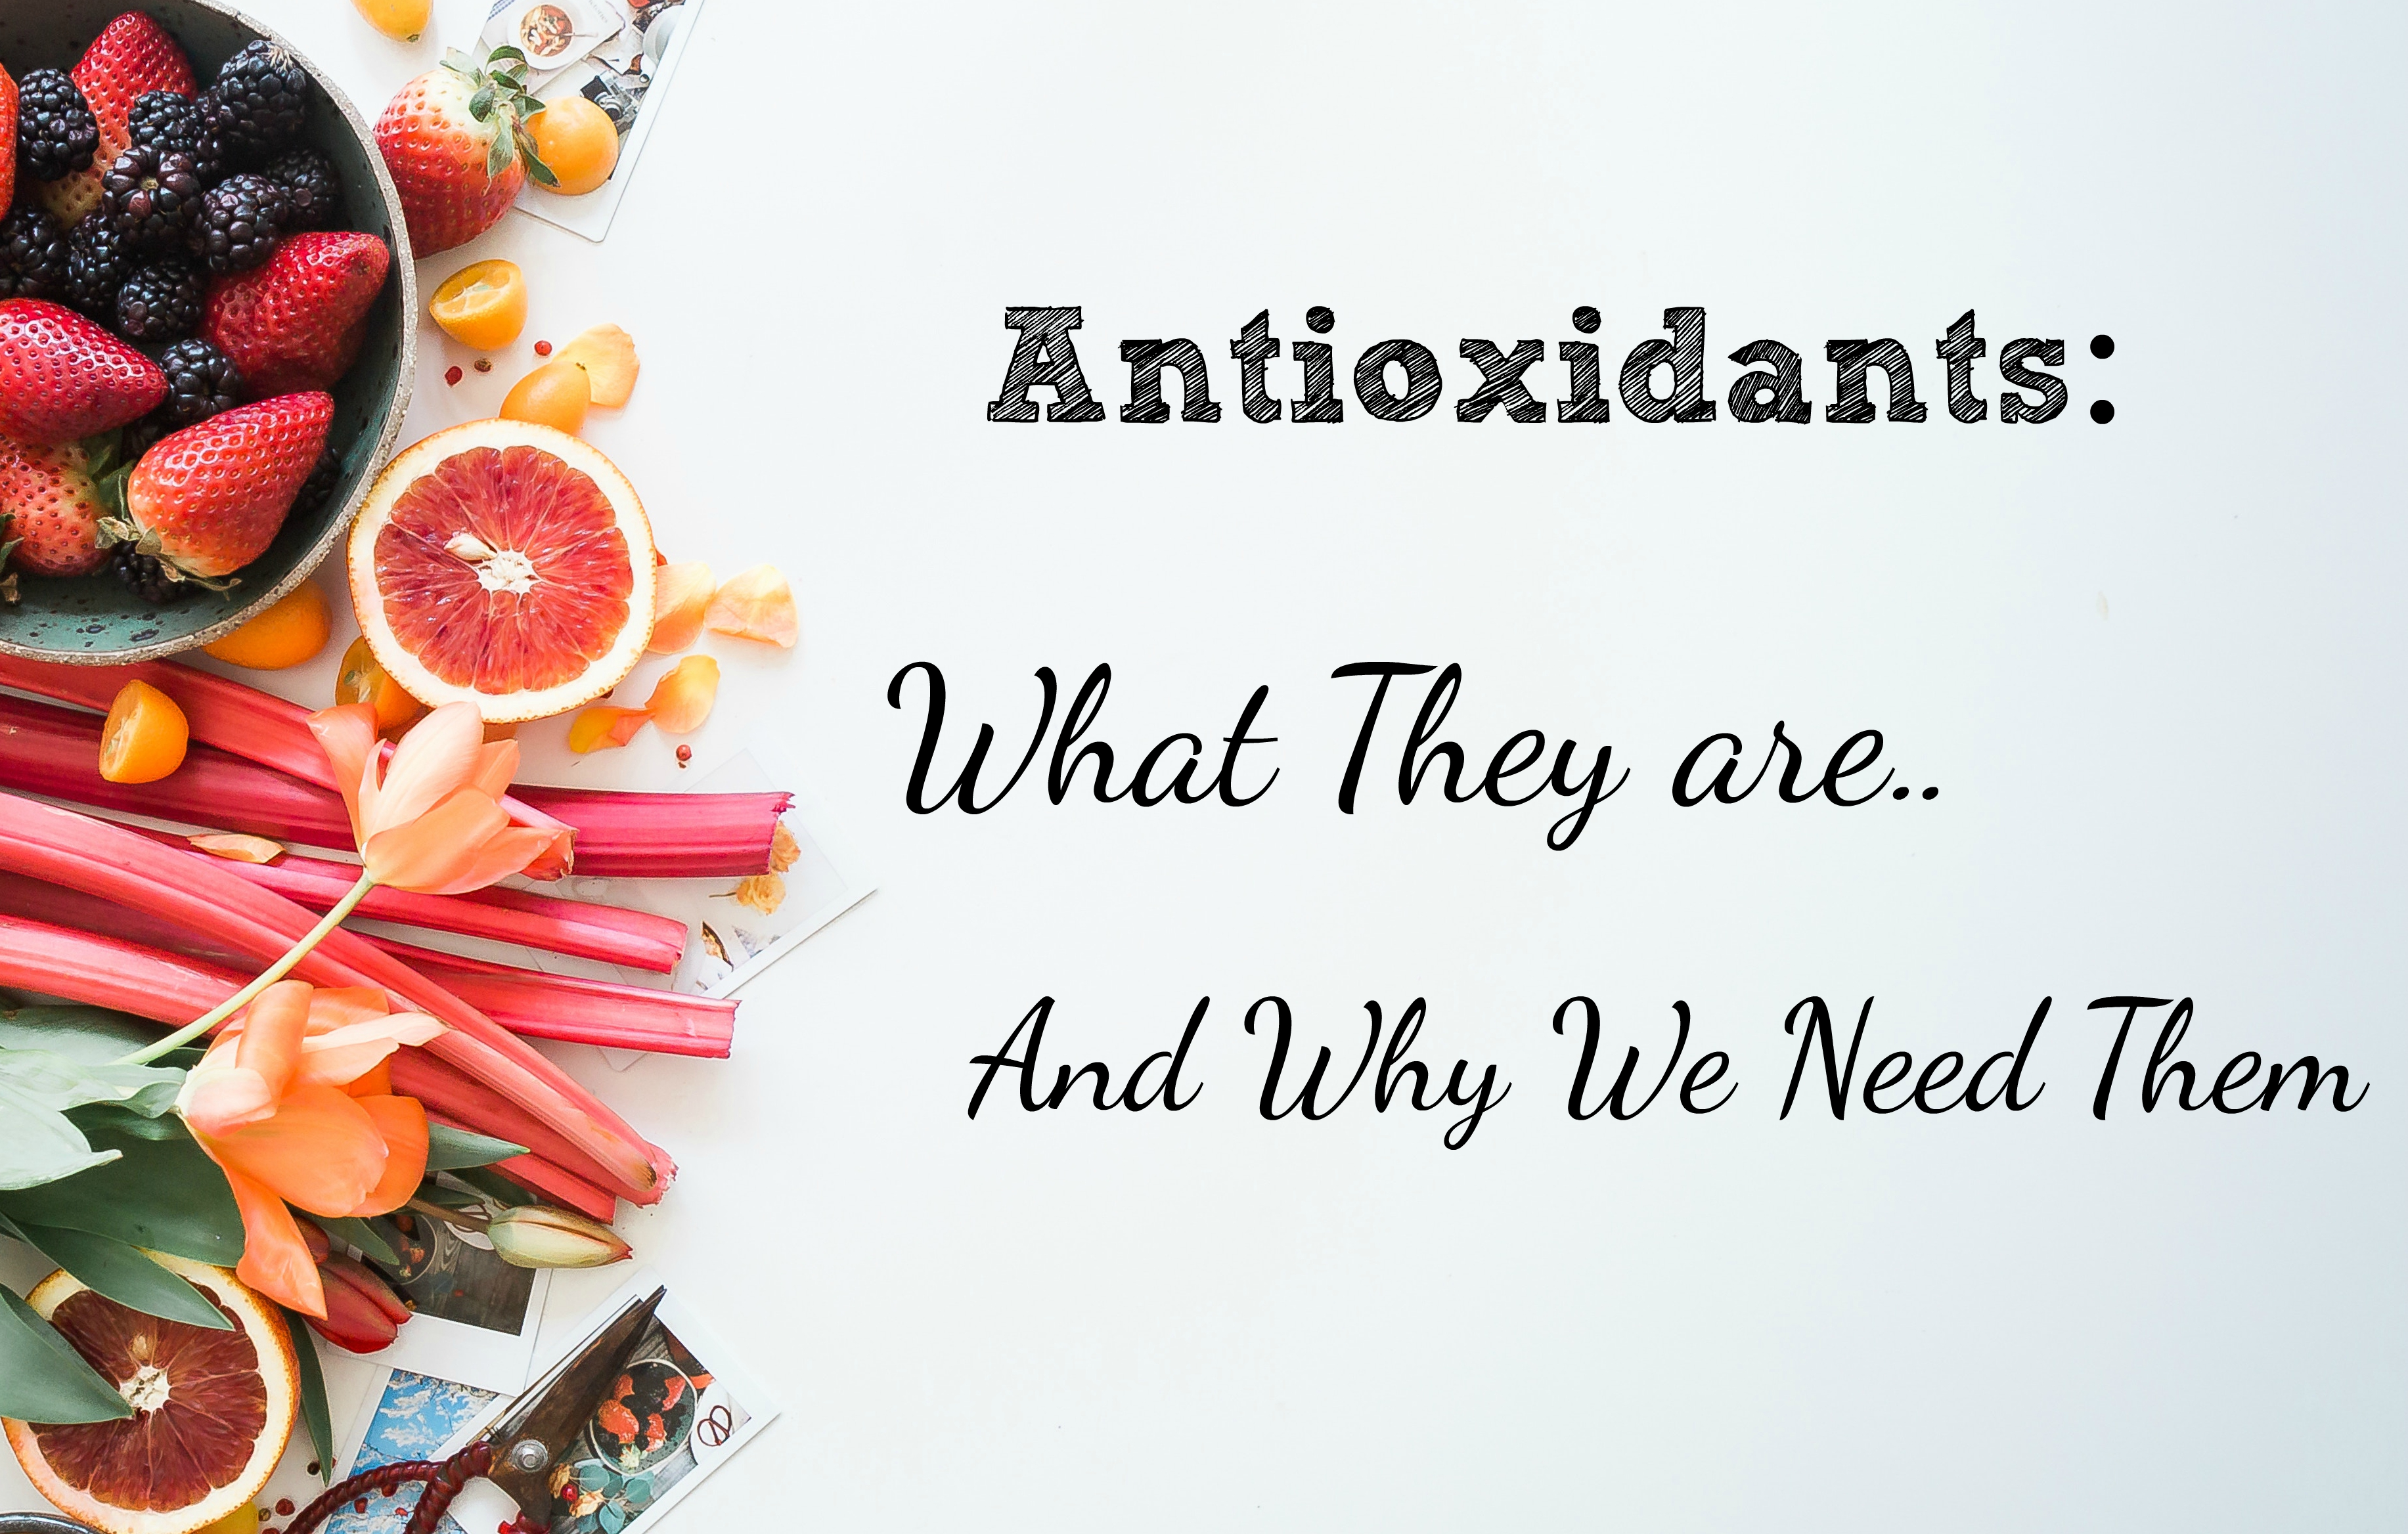 What are antioxidants and why do we need them?